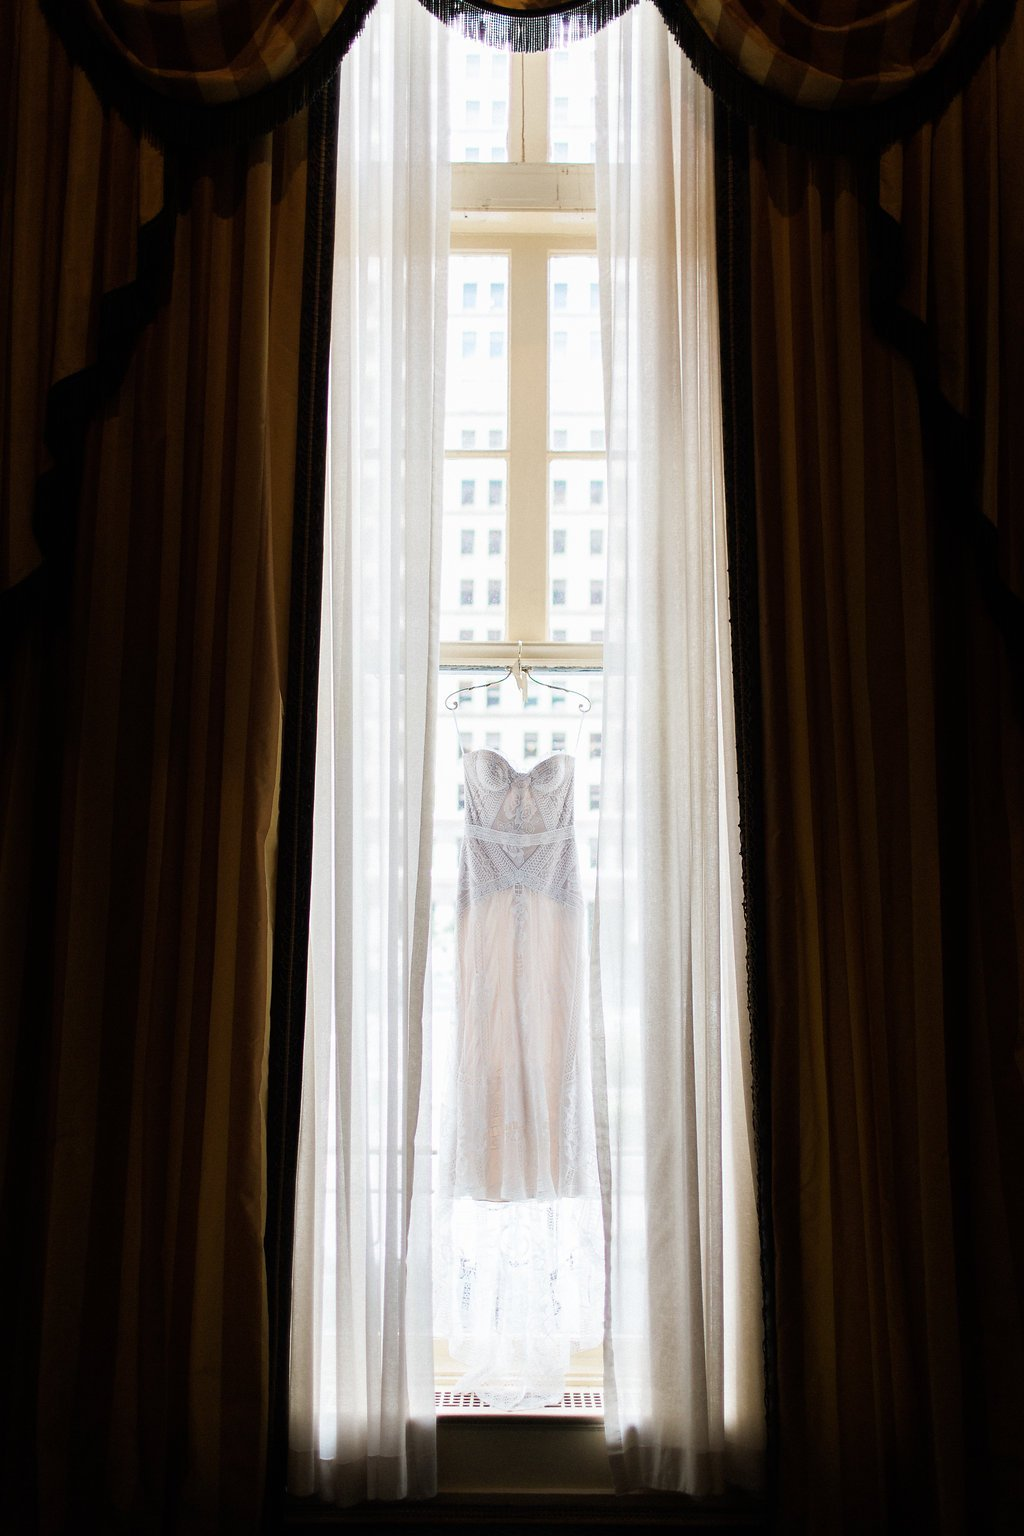 Rue de Siene 1920's inspired wedding dress at the Omni William Penn Hotel - 1920's inspired wedding Grand Concourse